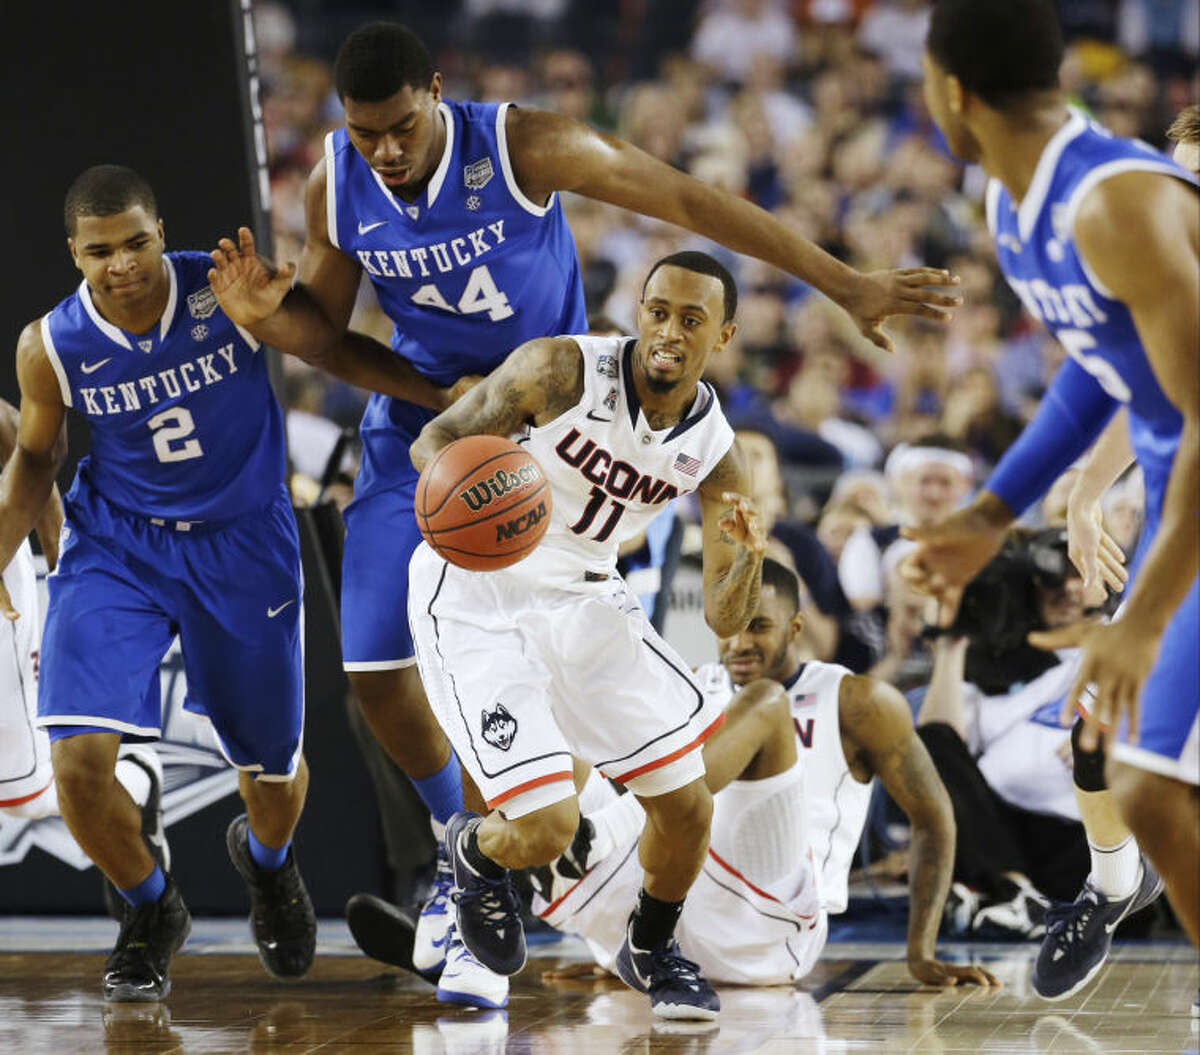 Connecticut guard Ryan Boatright (11) gets past Kentucky guard Aaron Harrison (2), pk44n=, as guard Andrew Harrison (5) looks on during the first half of the NCAA Final Four tournament college basketball championship game Monday, April 7, 2014, in Arlington, Texas. (AP Photo/David J. Phillip)